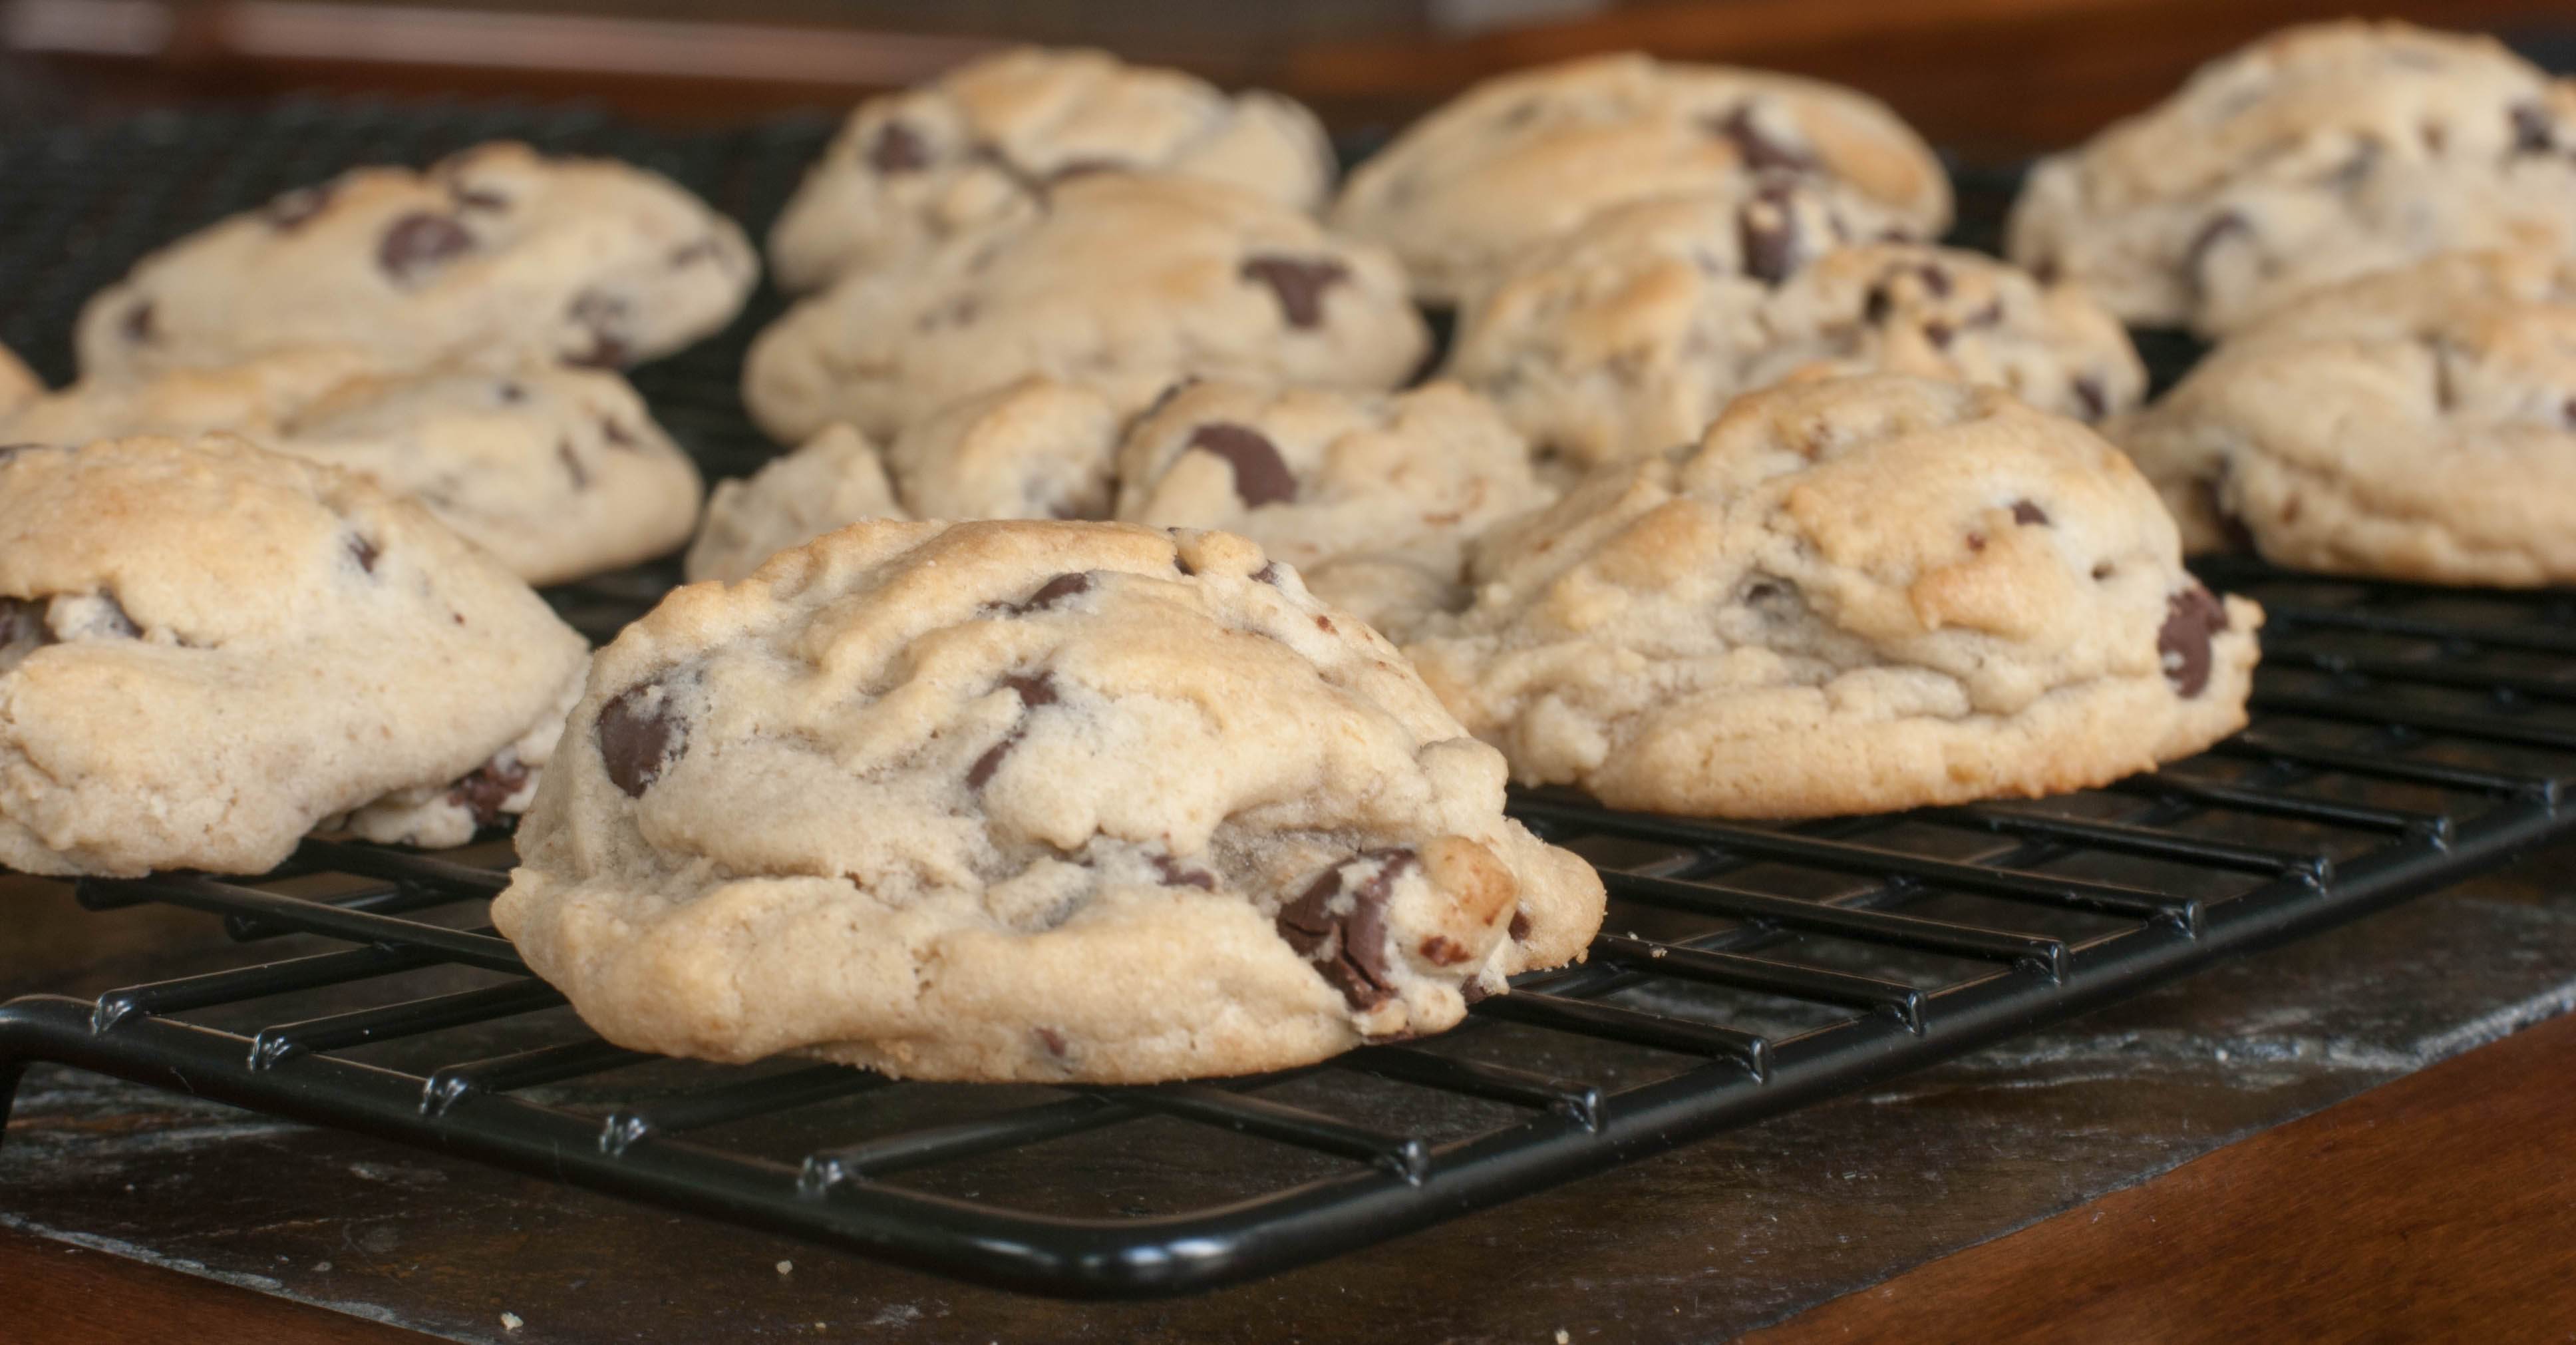 Easy Chocolate Chip Cookies - Made From Pinterest